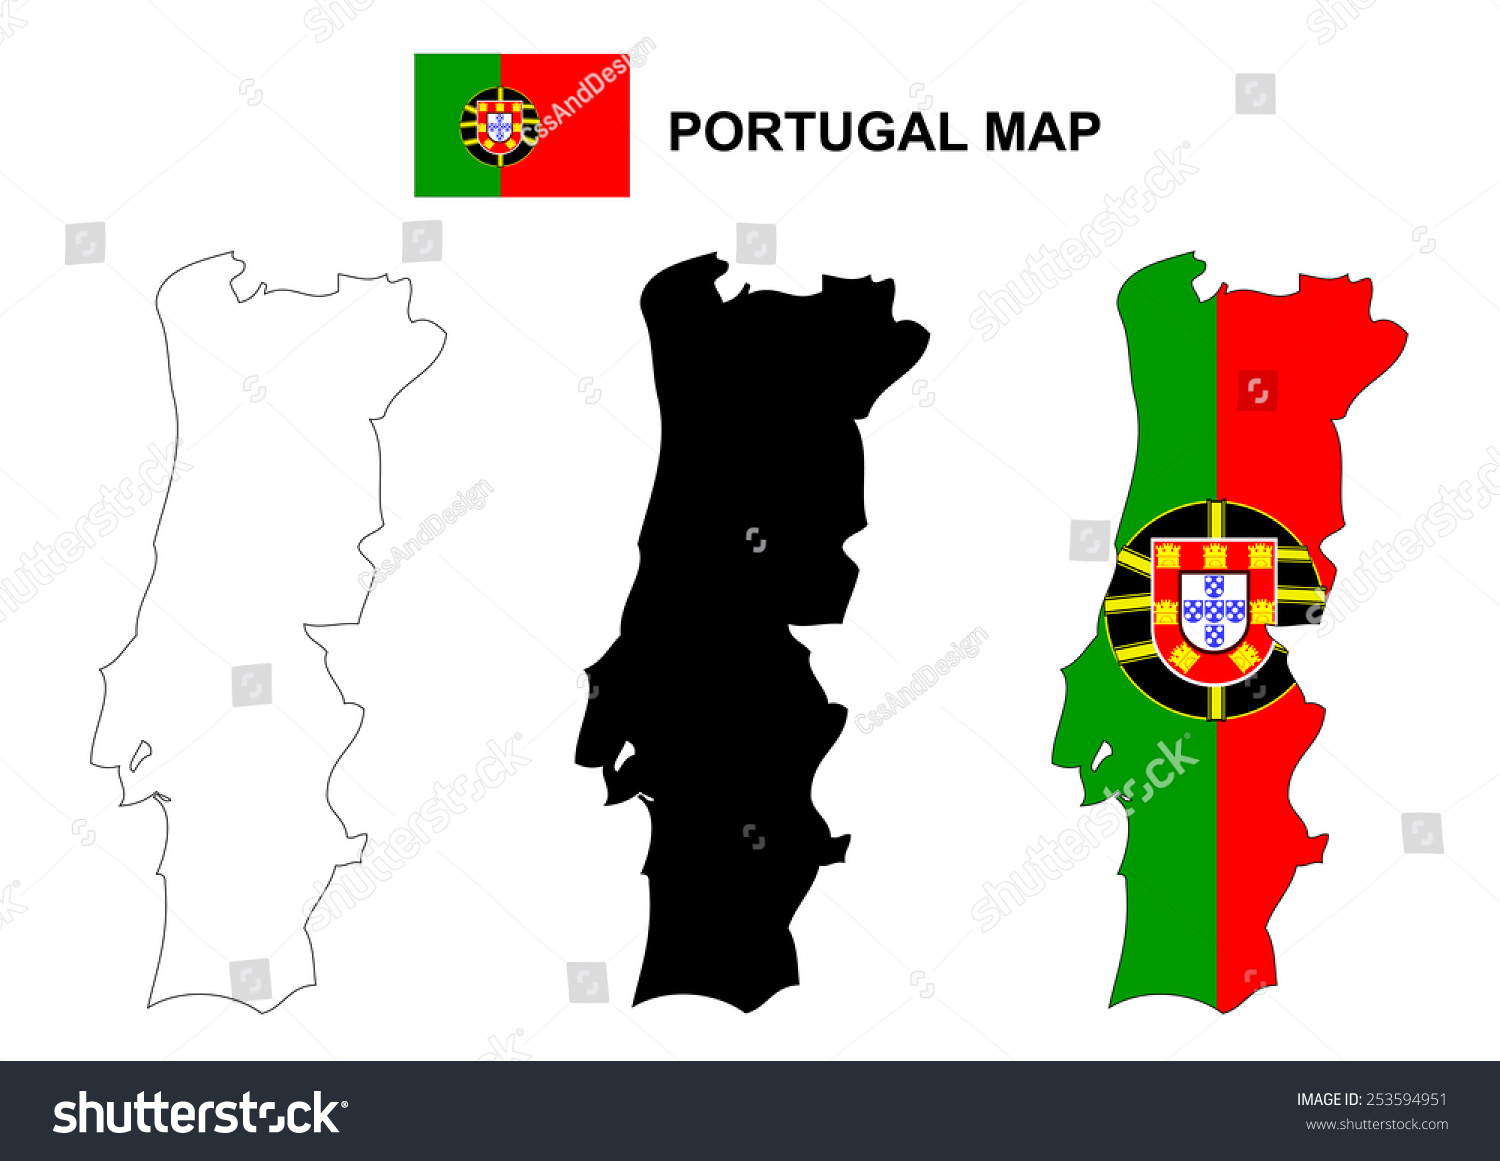 Portugal Map Vector Portugal Flag Vector Stock Vector - Portugal map vector